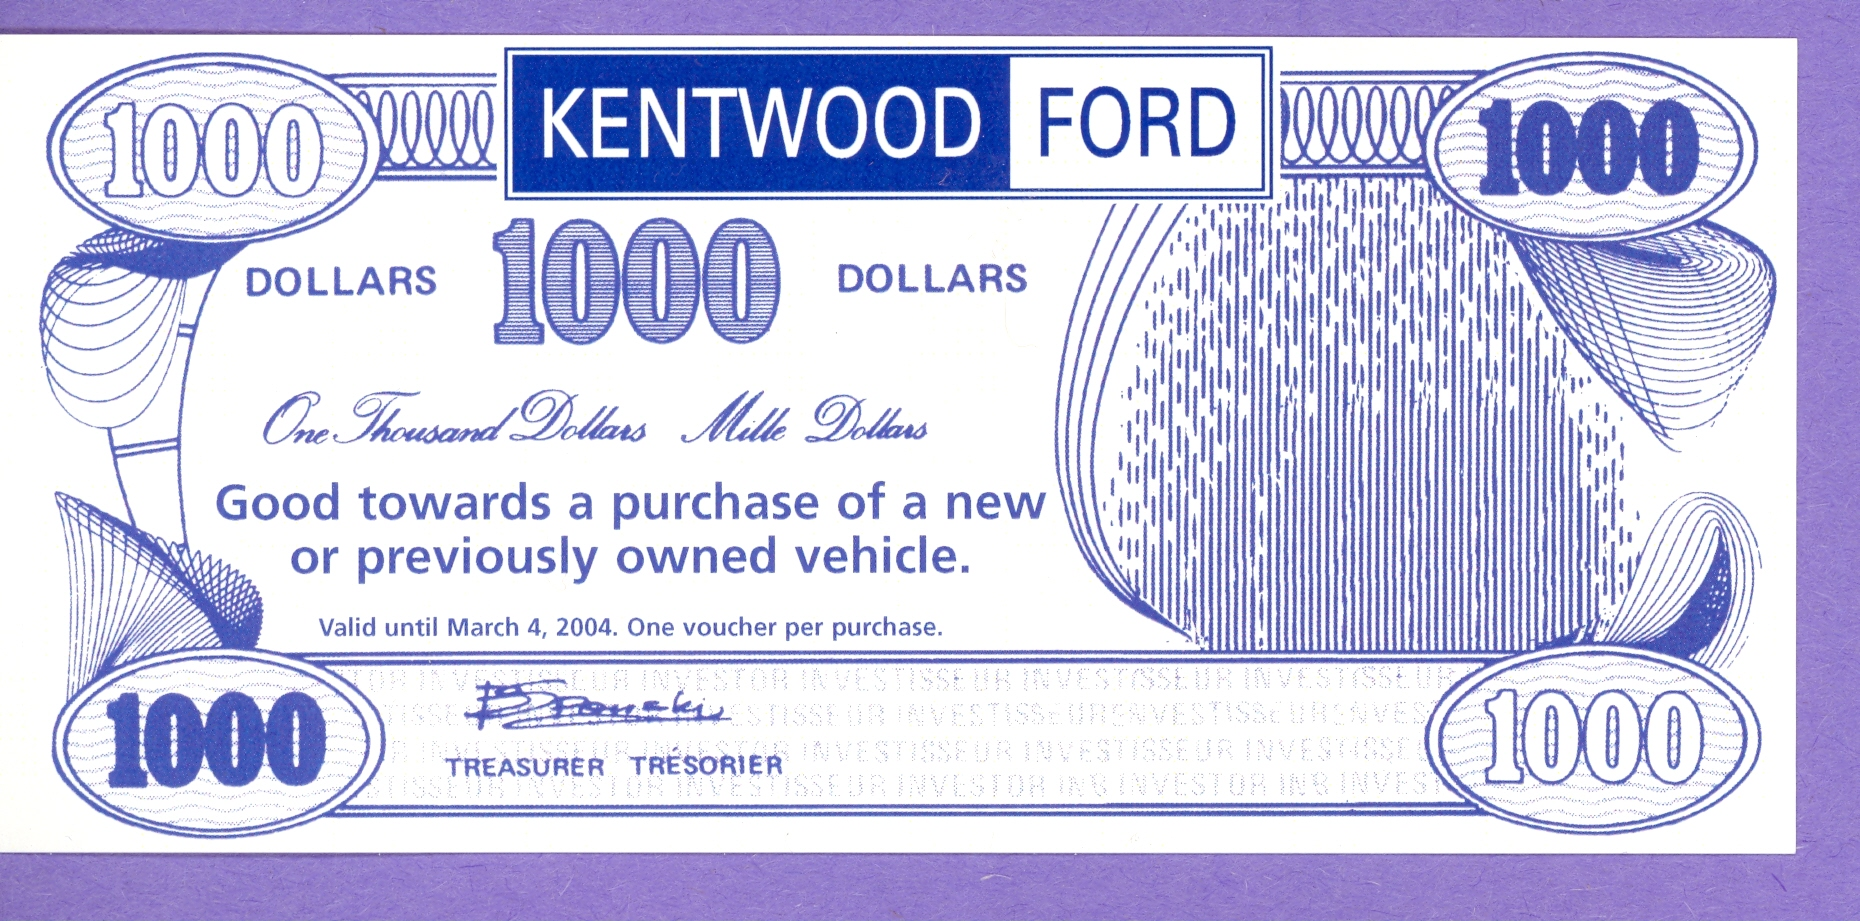 2004 Kentwood Ford $1000 Off Vehicle Purchase